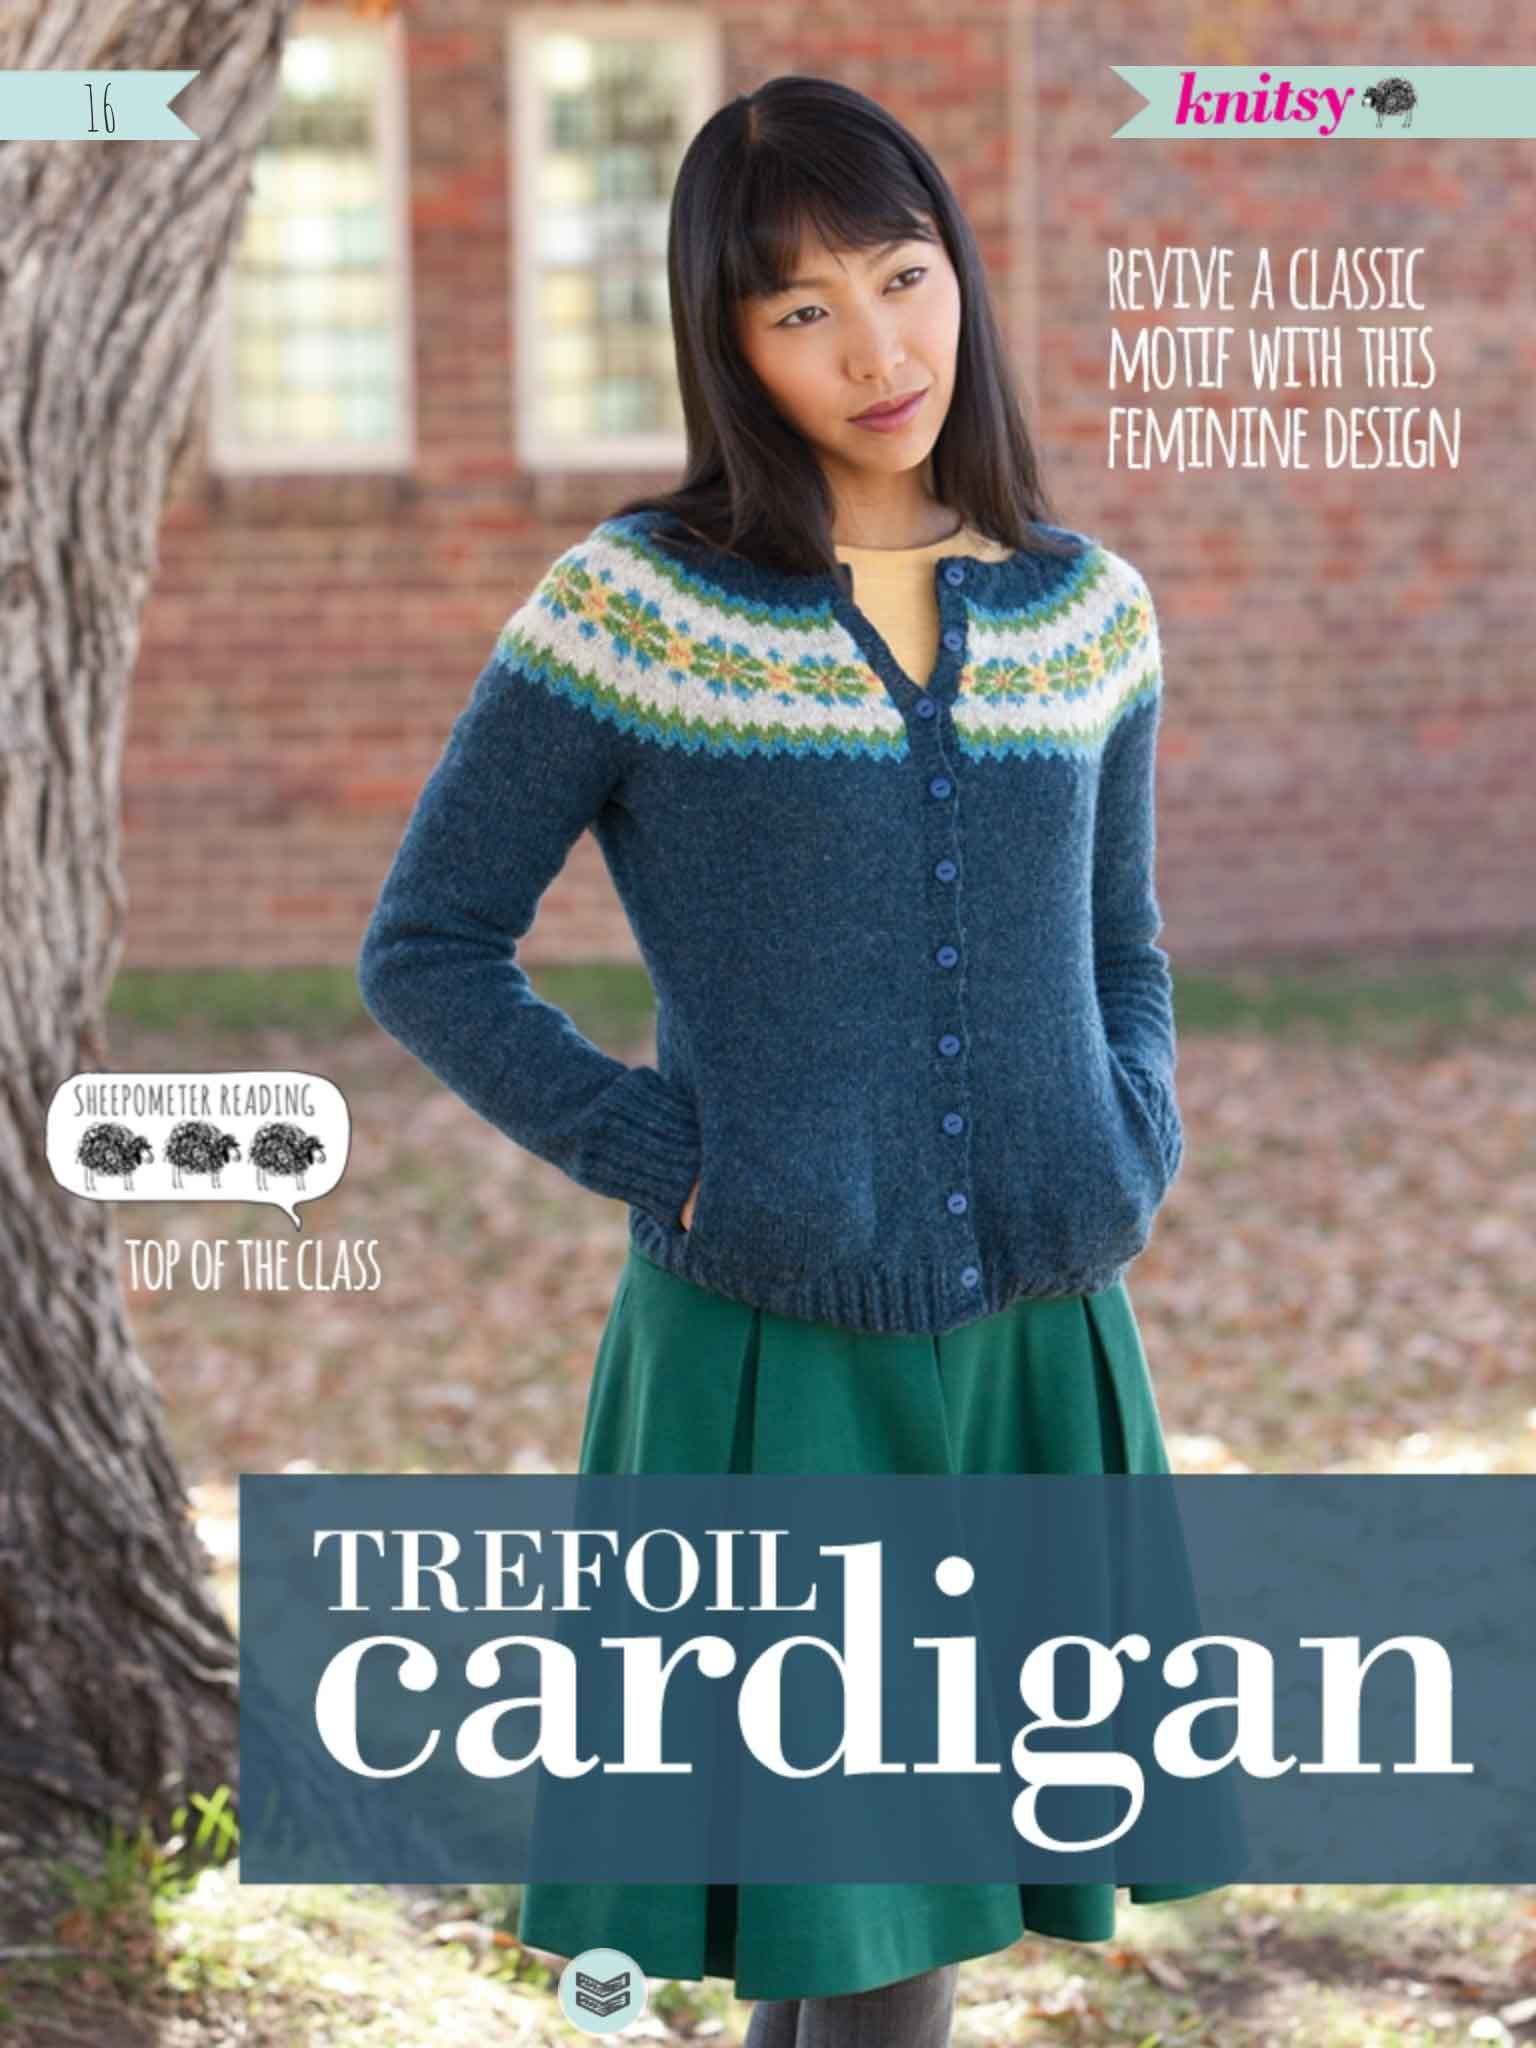 Knitsy issue 7 is now live packed full of free patterns knits knitsy issue 7 is now live packed full of free patterns knits from across crochet craftsknit bankloansurffo Image collections